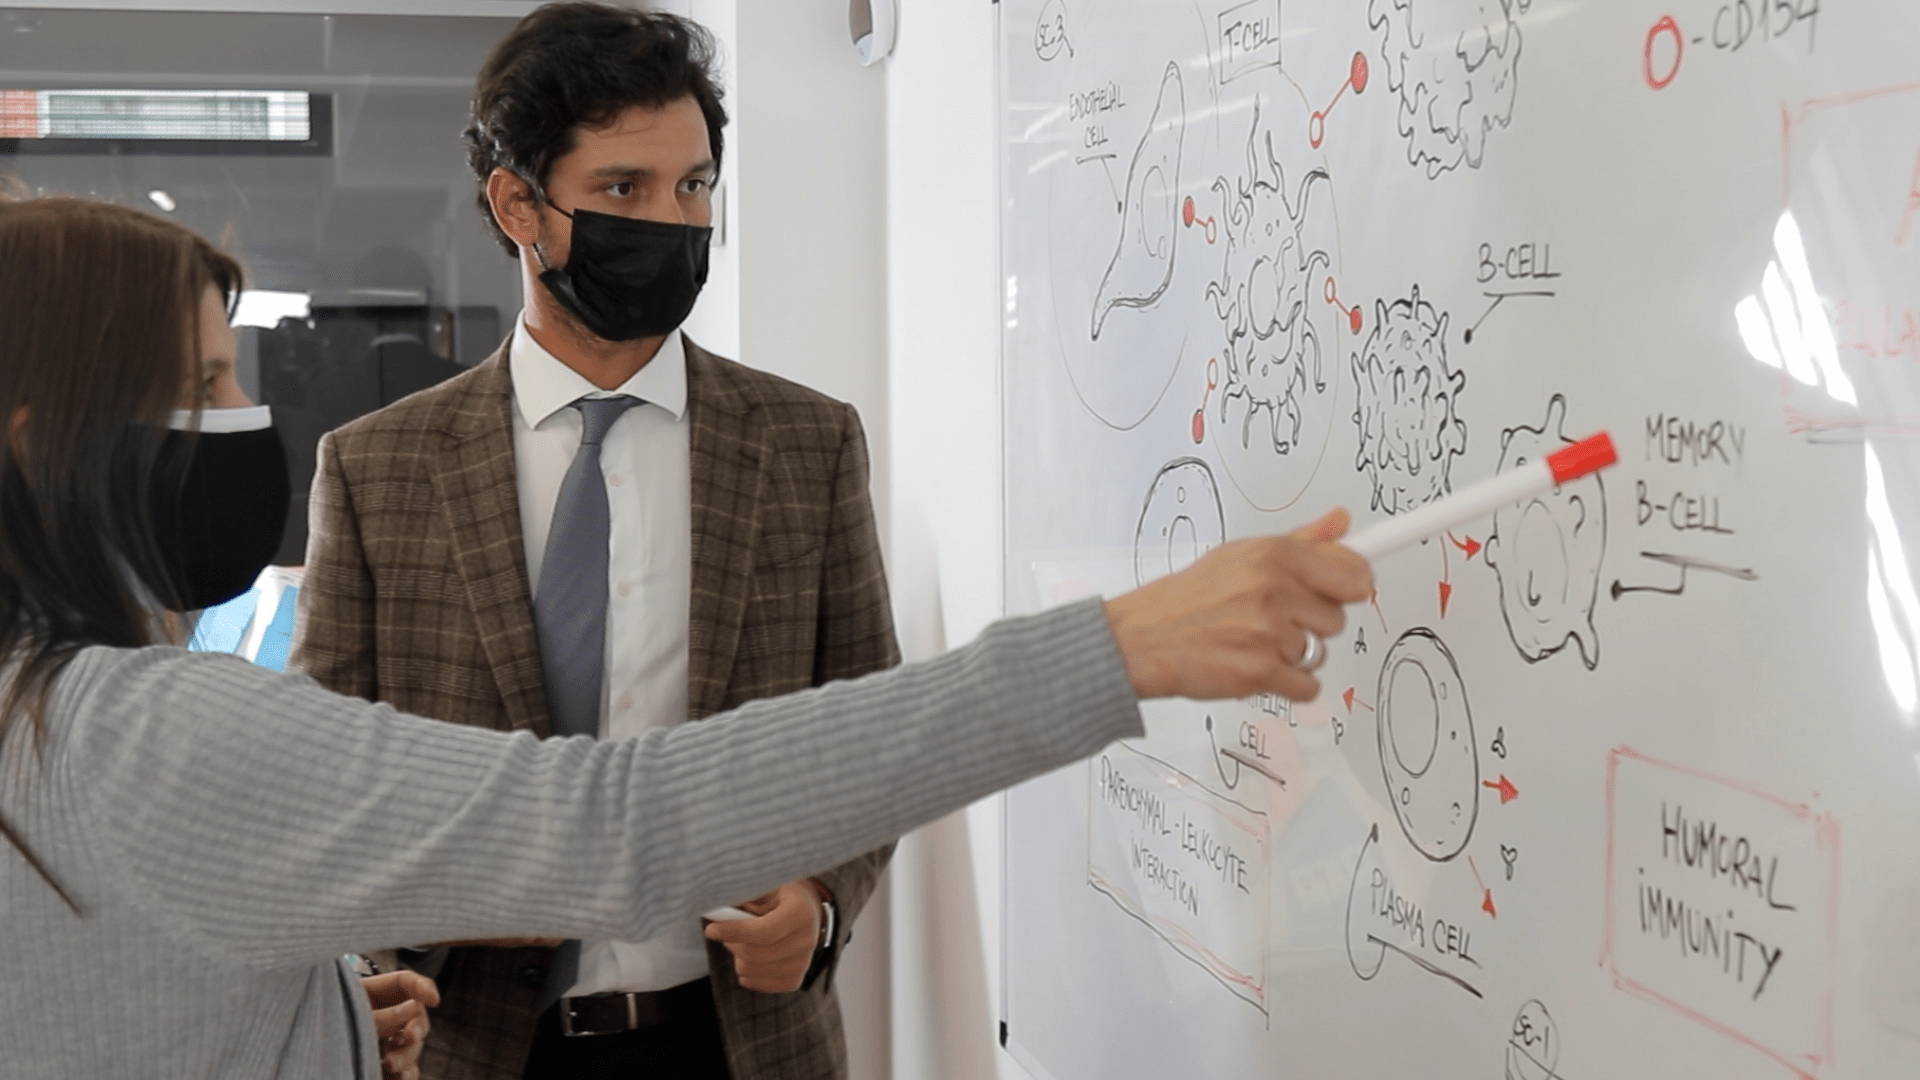 3dforscience with clients in office